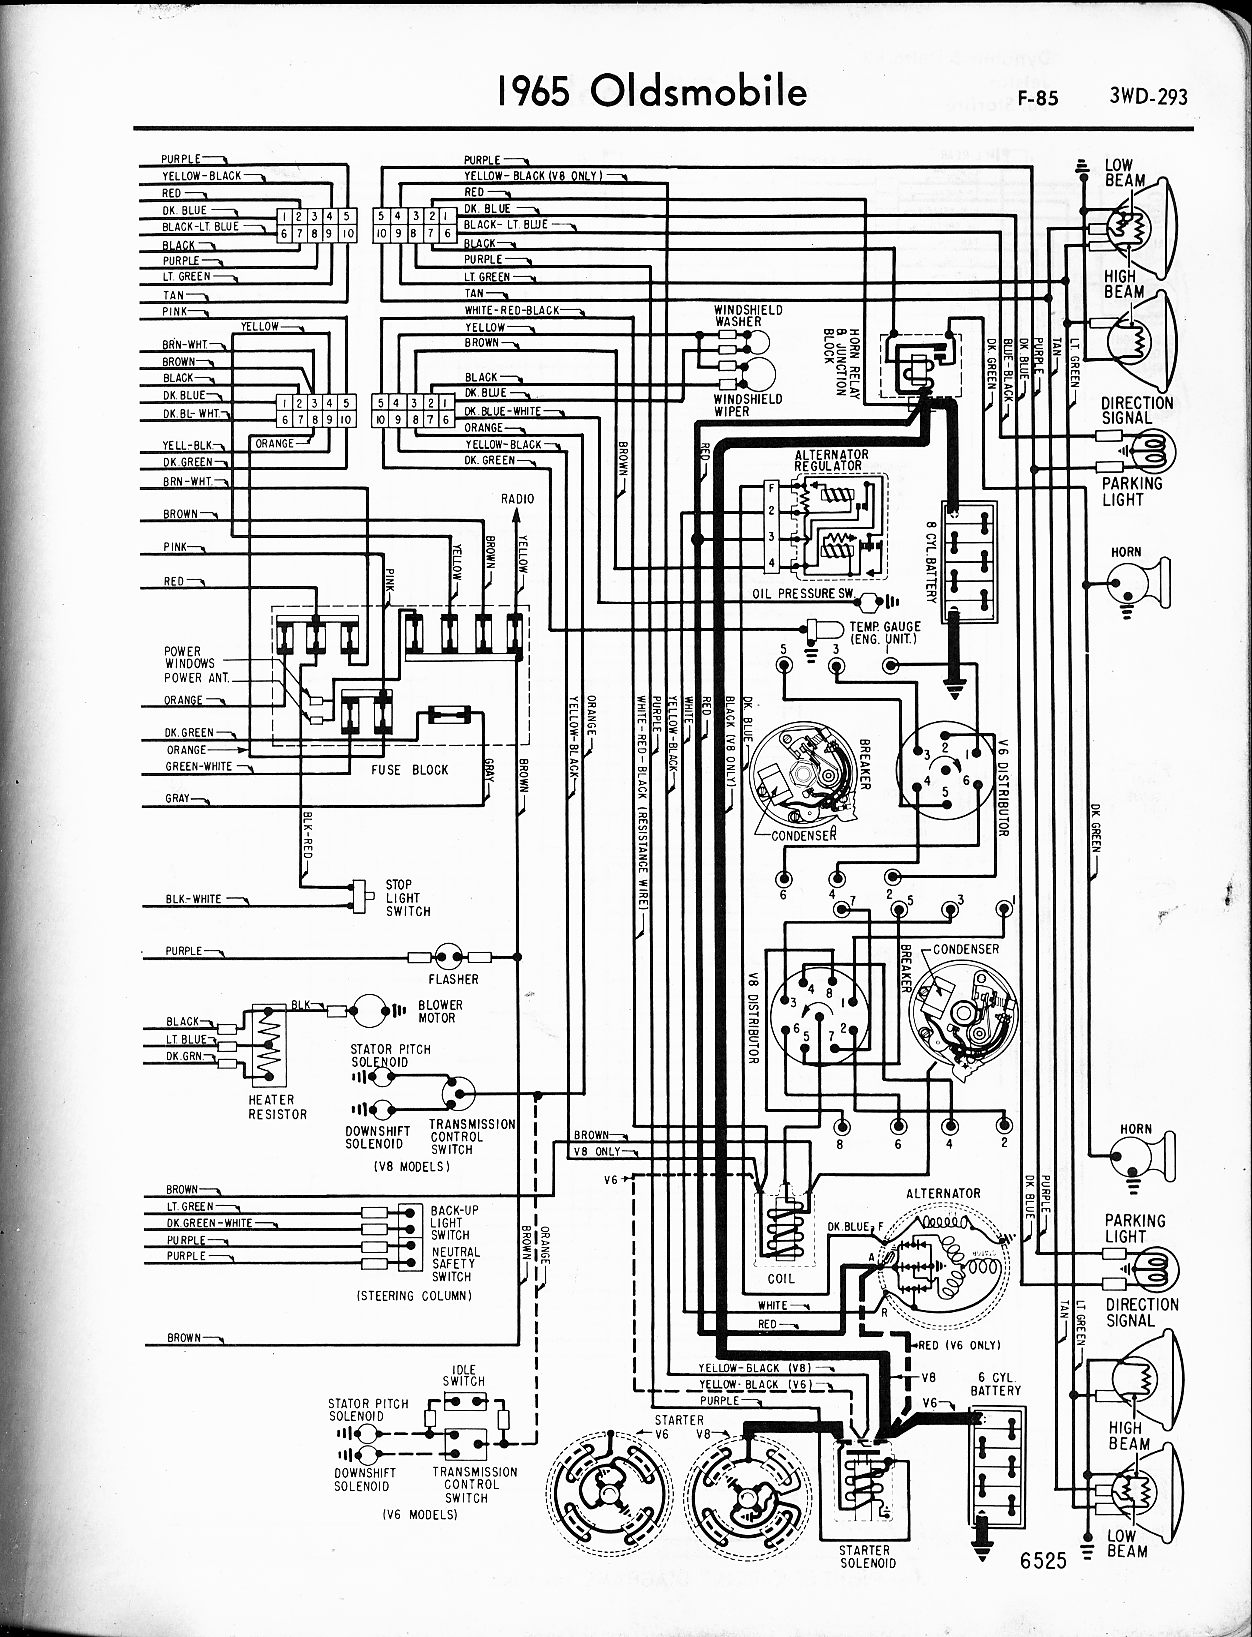 hight resolution of oldsmobile 88 engine diagram wiring diagram centre 1988 oldsmobile delta 88 engine diagram oldsmobile 88 engine